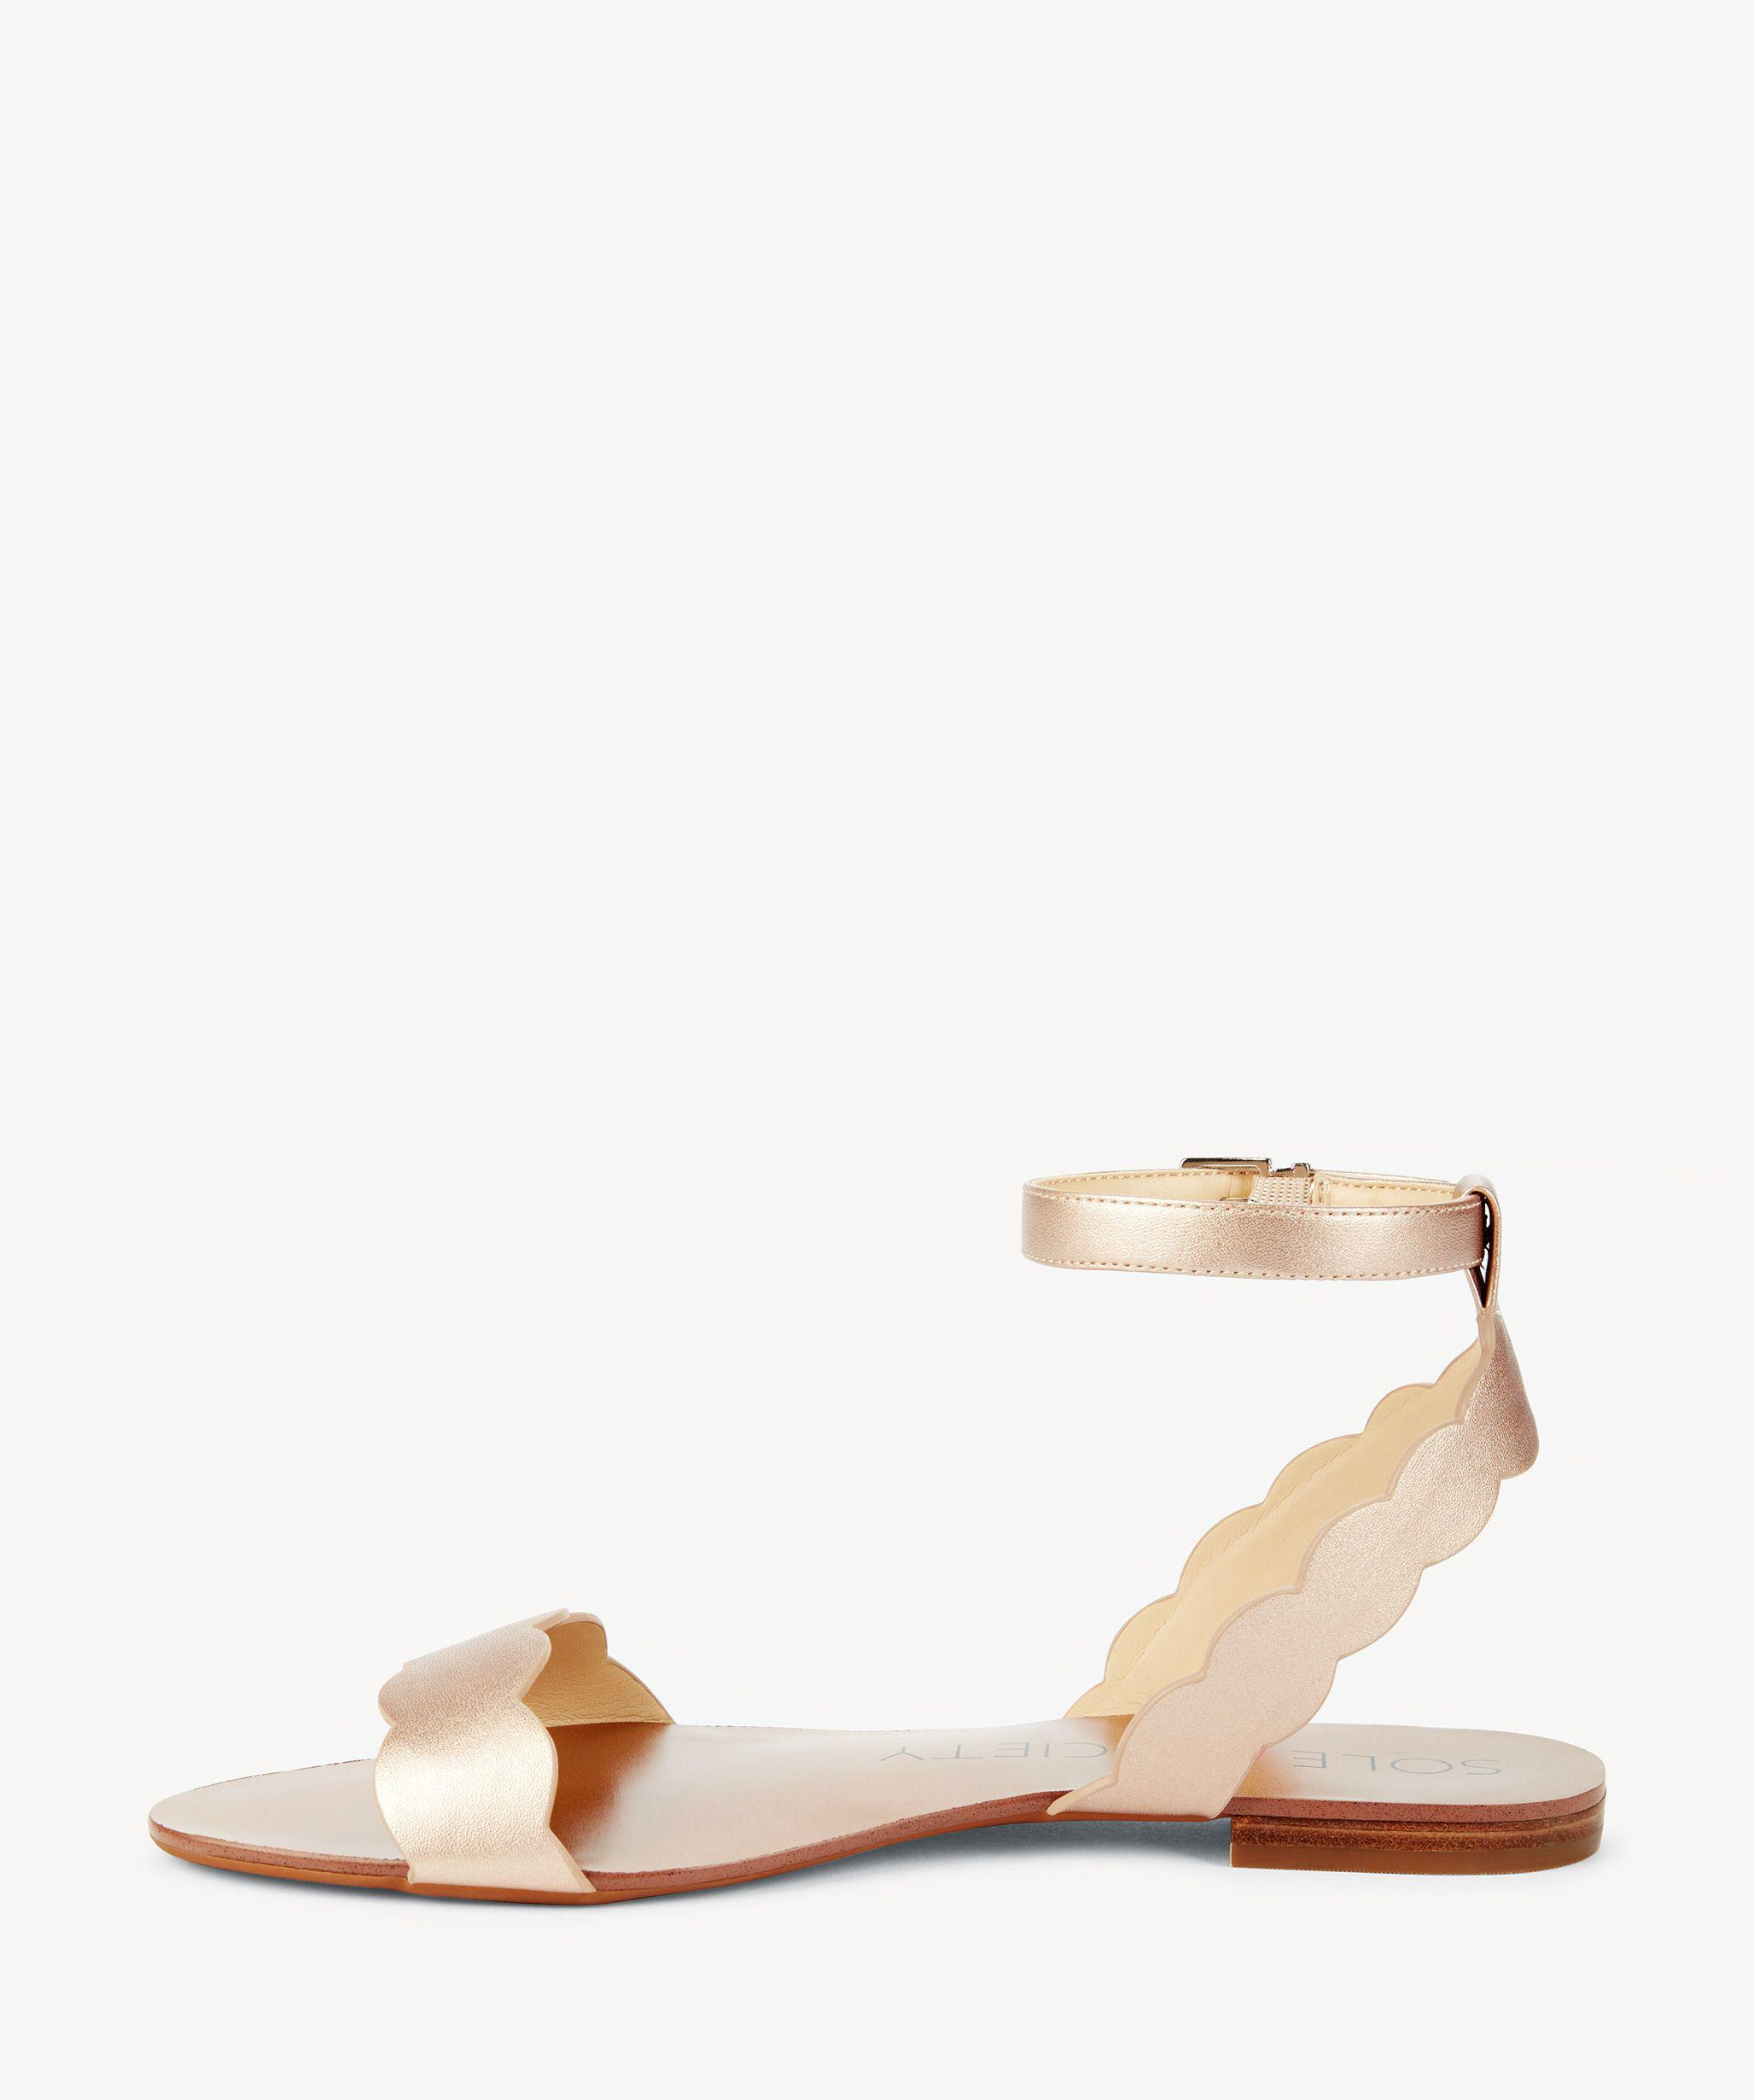 918961c7ae2 Lyst - Sole Society Odette Scalloped Flat Sandal in Pink